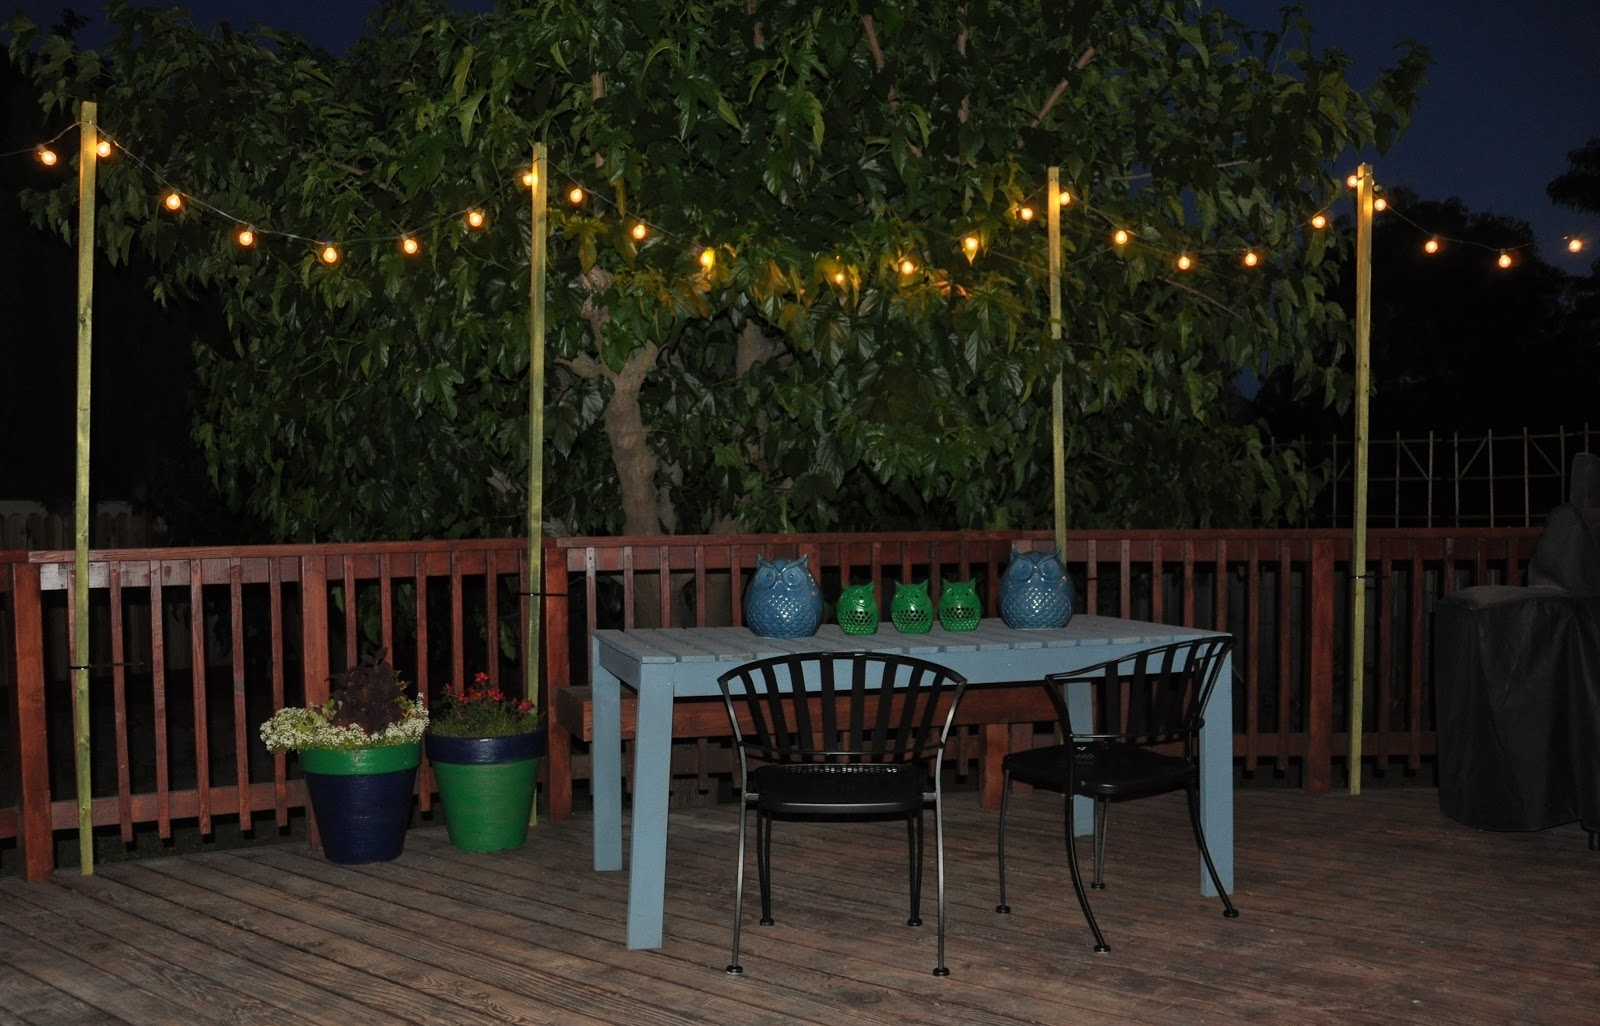 Stunning String Lights Outdoor Patio Target Indoor Pole Ideas For Throughout Pole Hanging Outdoor Lights (View 15 of 15)